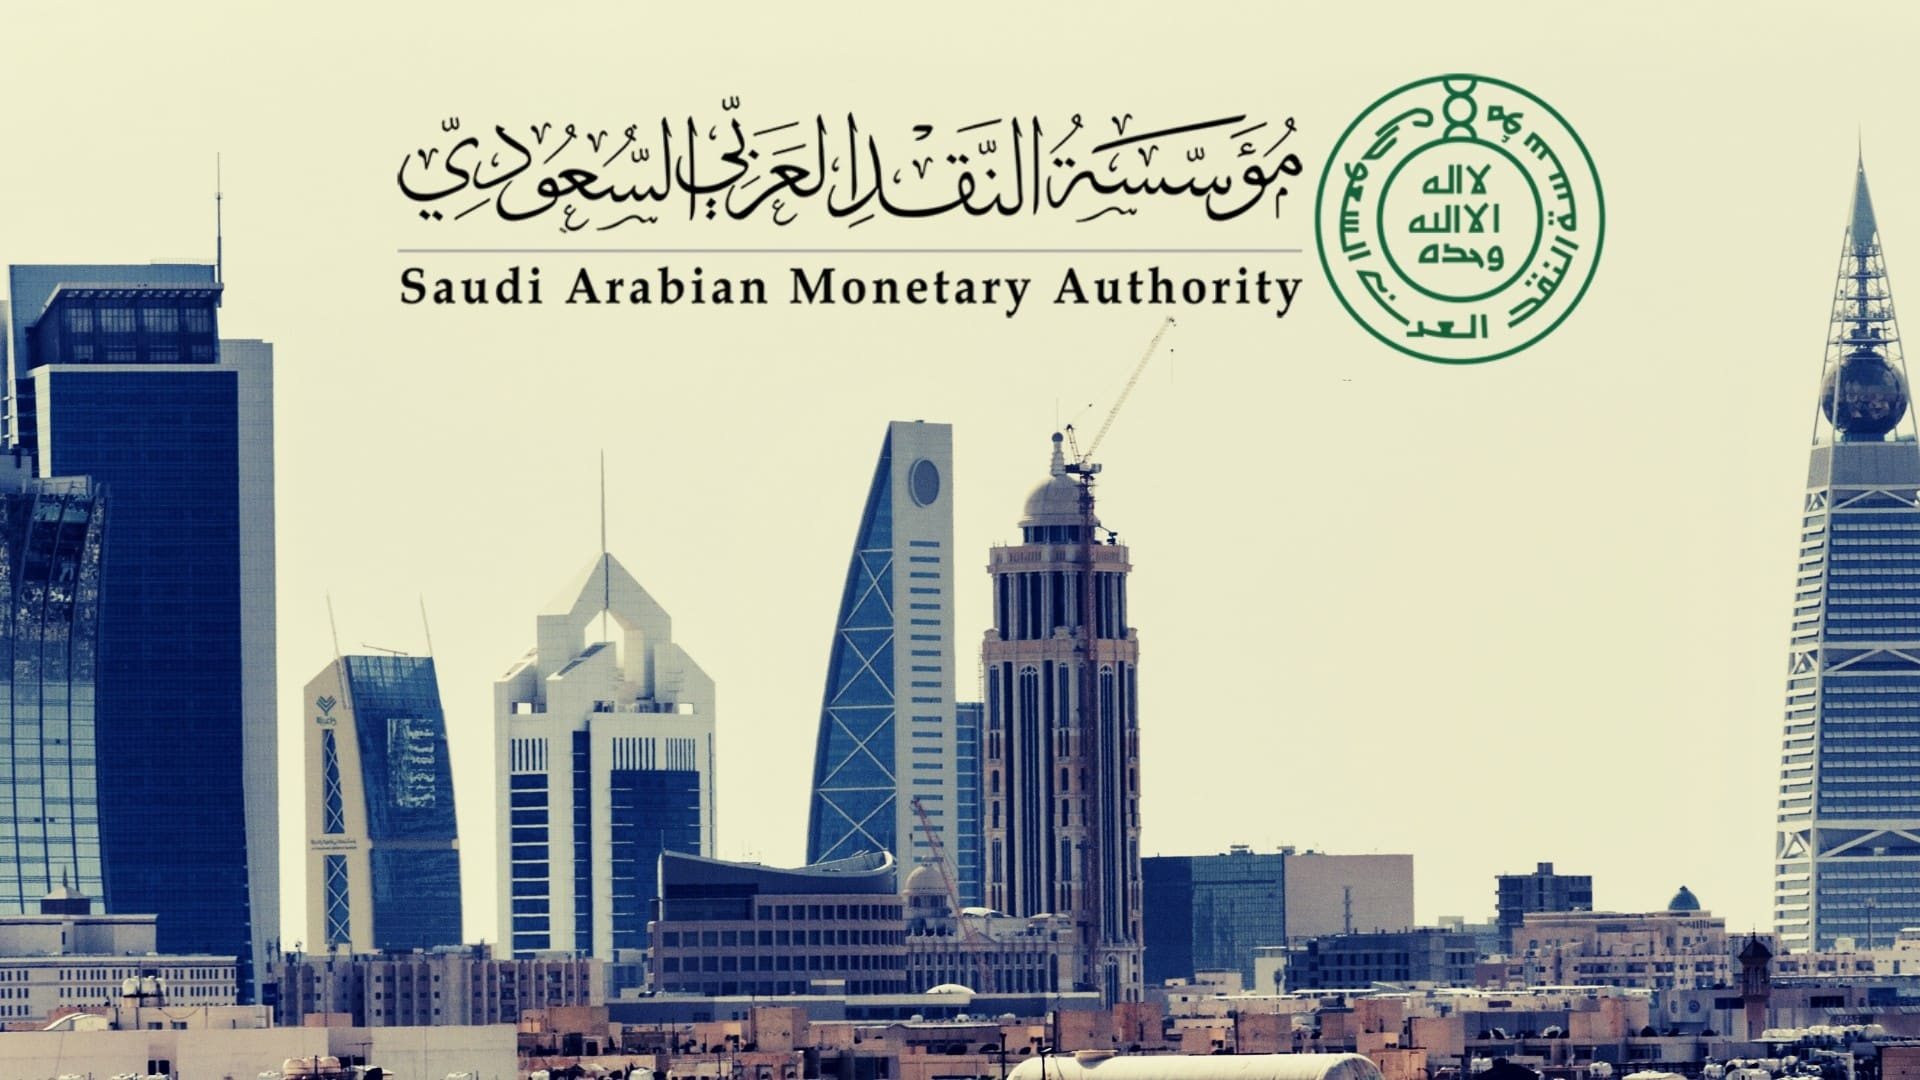 SAMA (Saudi Arabian Monetary Authority) Sets a Minimum Capital Limit for Small Finance Companies